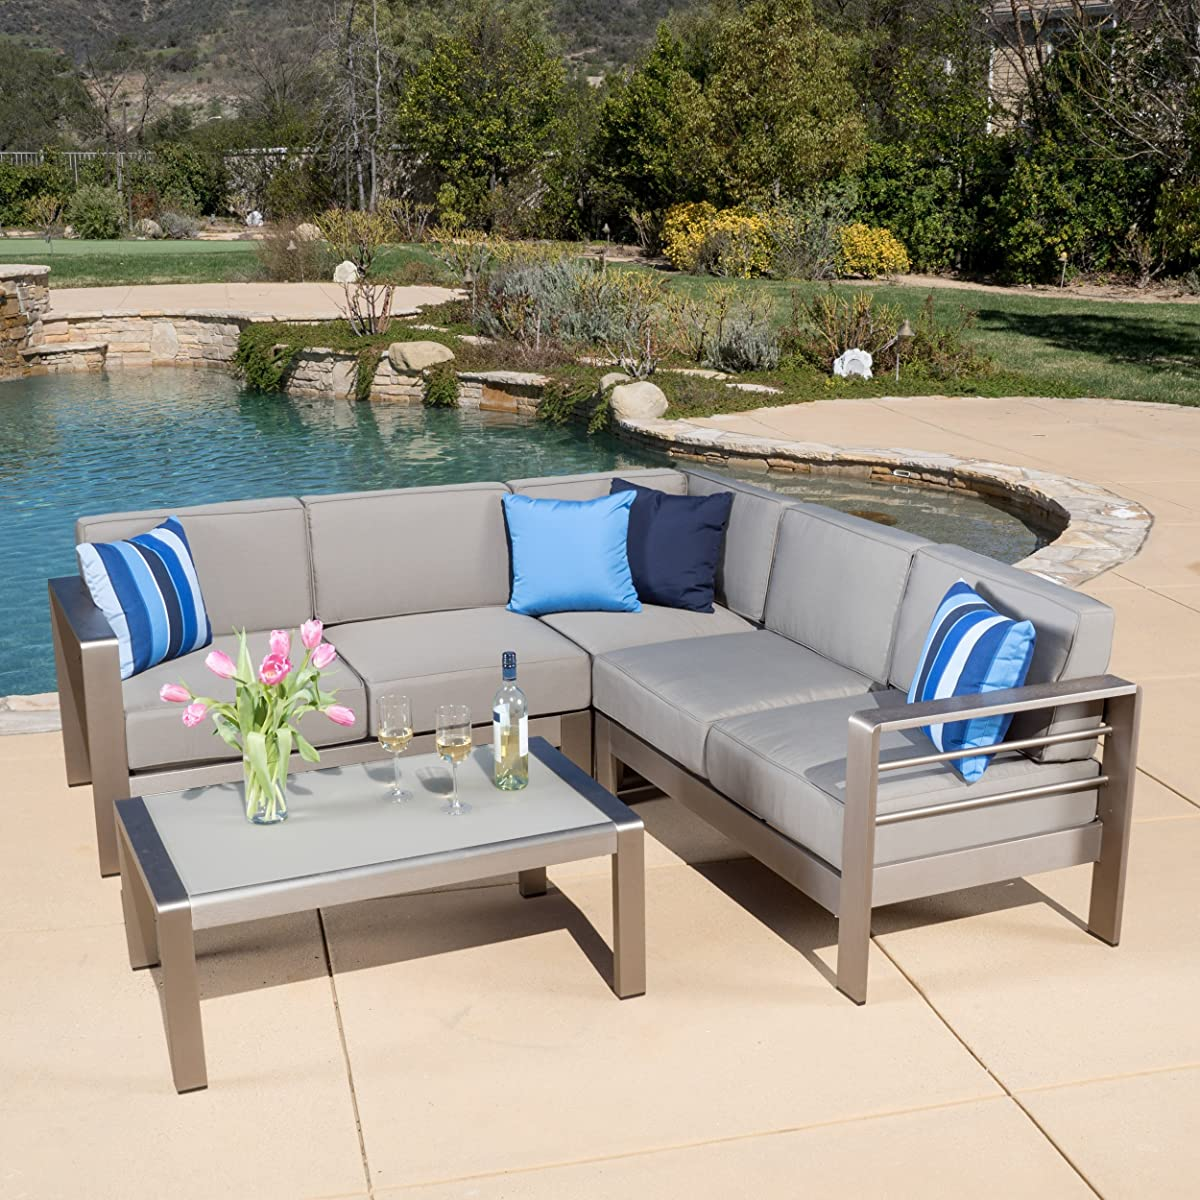 Christopher Knight Home 296671 Denise Austin Sonora Outdoor Aluminum 4-Piece Sofa Set with Cushions, Silver